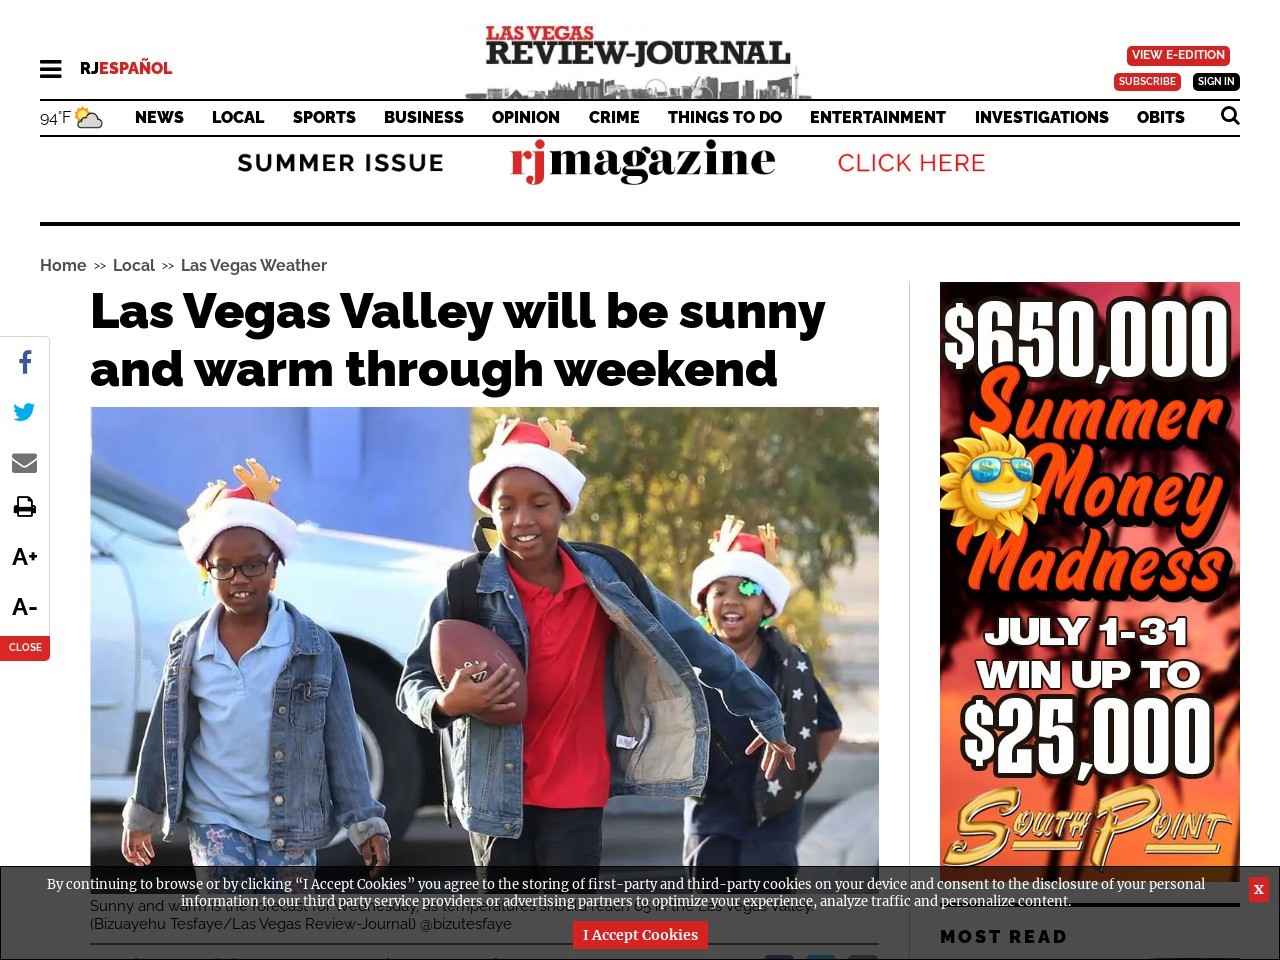 Las Vegas Valley will be sunny and warm through weekend